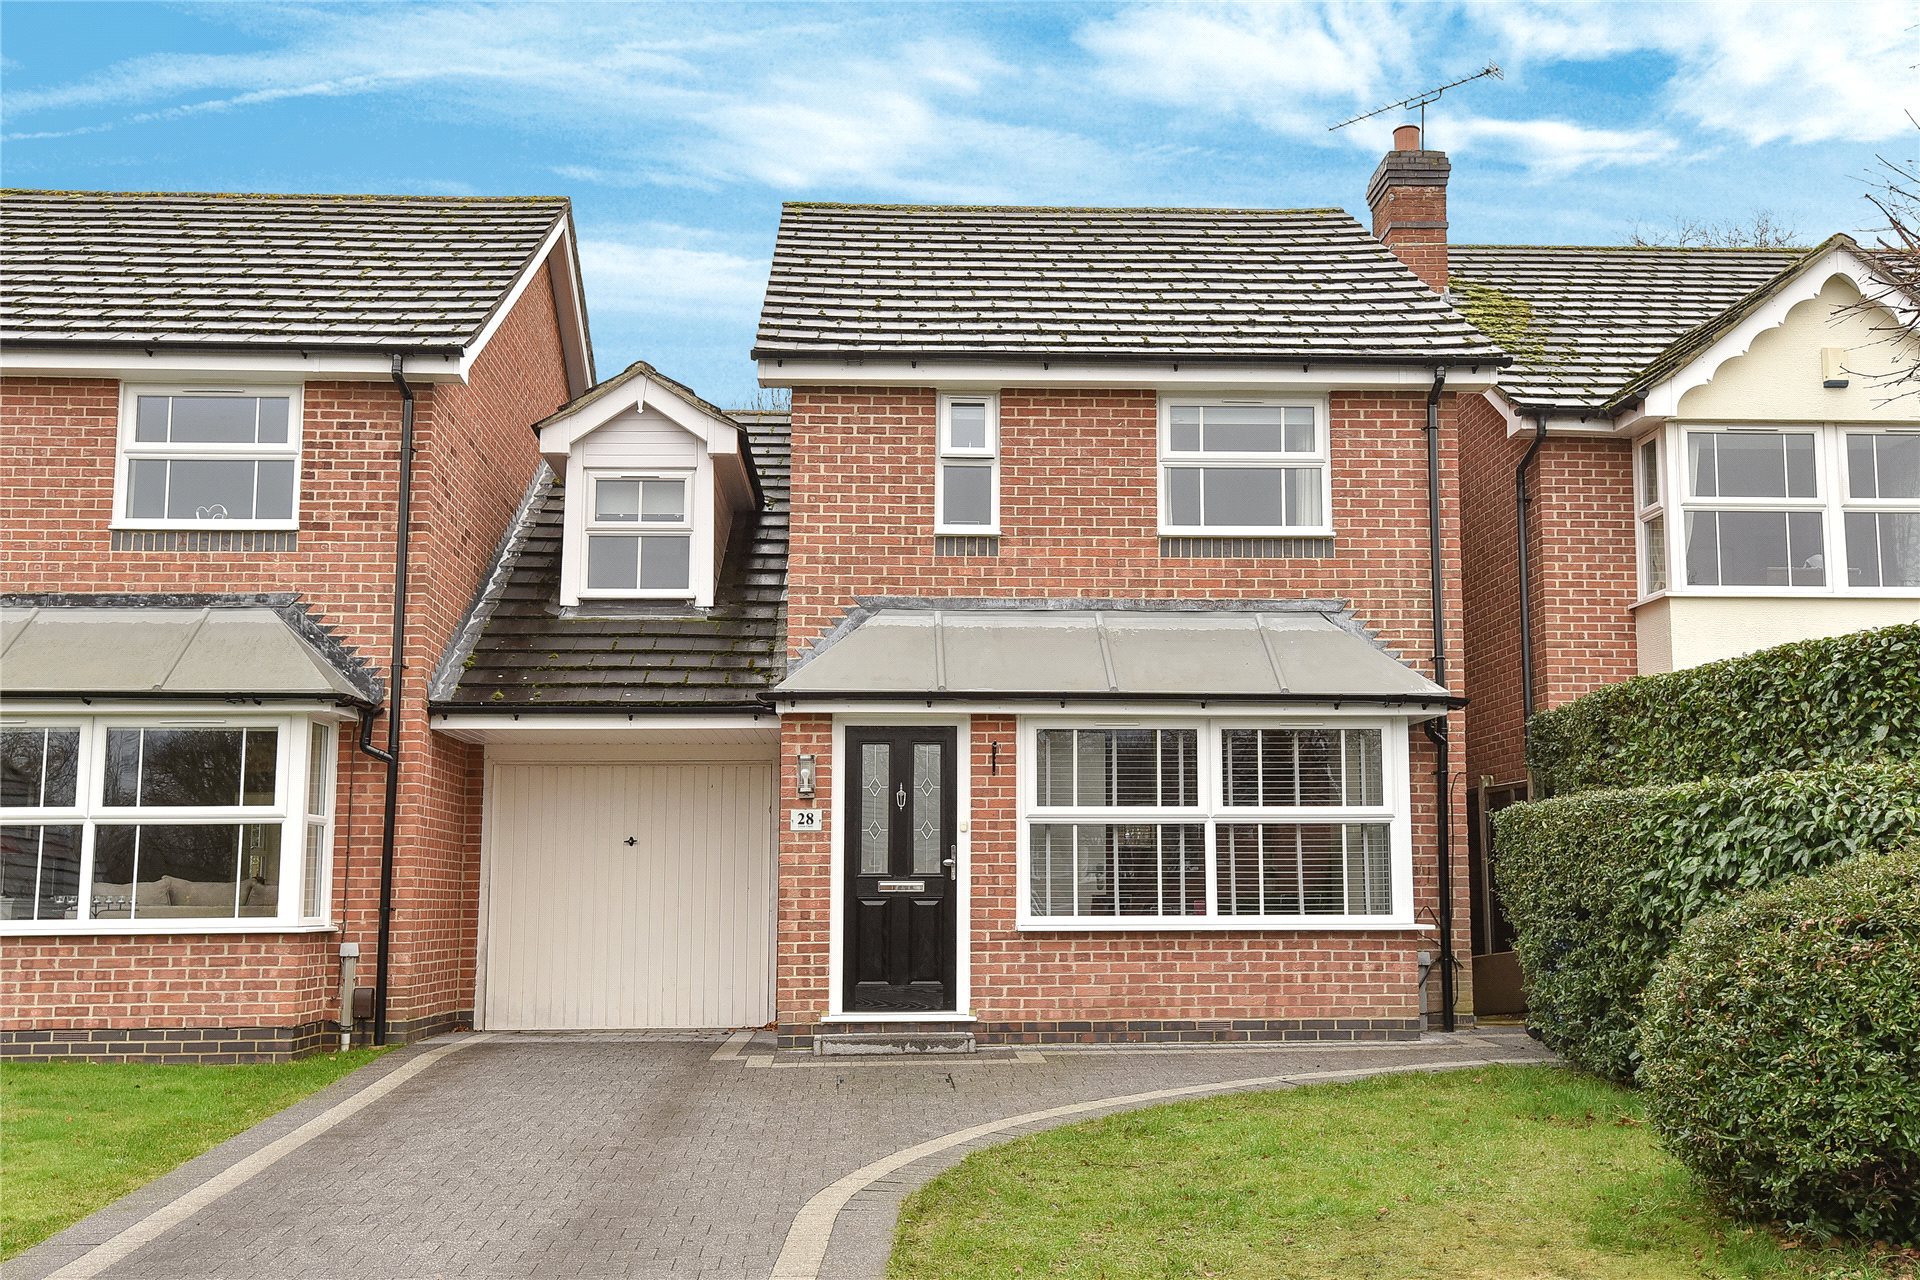 3 Bedrooms Link Detached House for sale in Lower Canes, Yateley, Hampshire, GU46